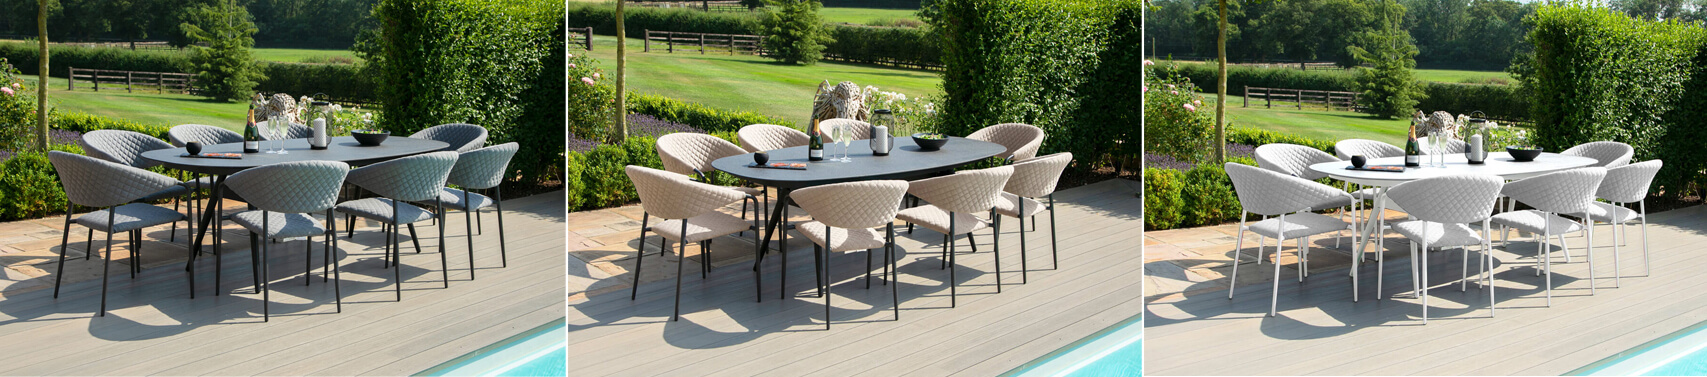 mbimages/p/e/pebble_8_seat_oval_dining_set_1.jpg